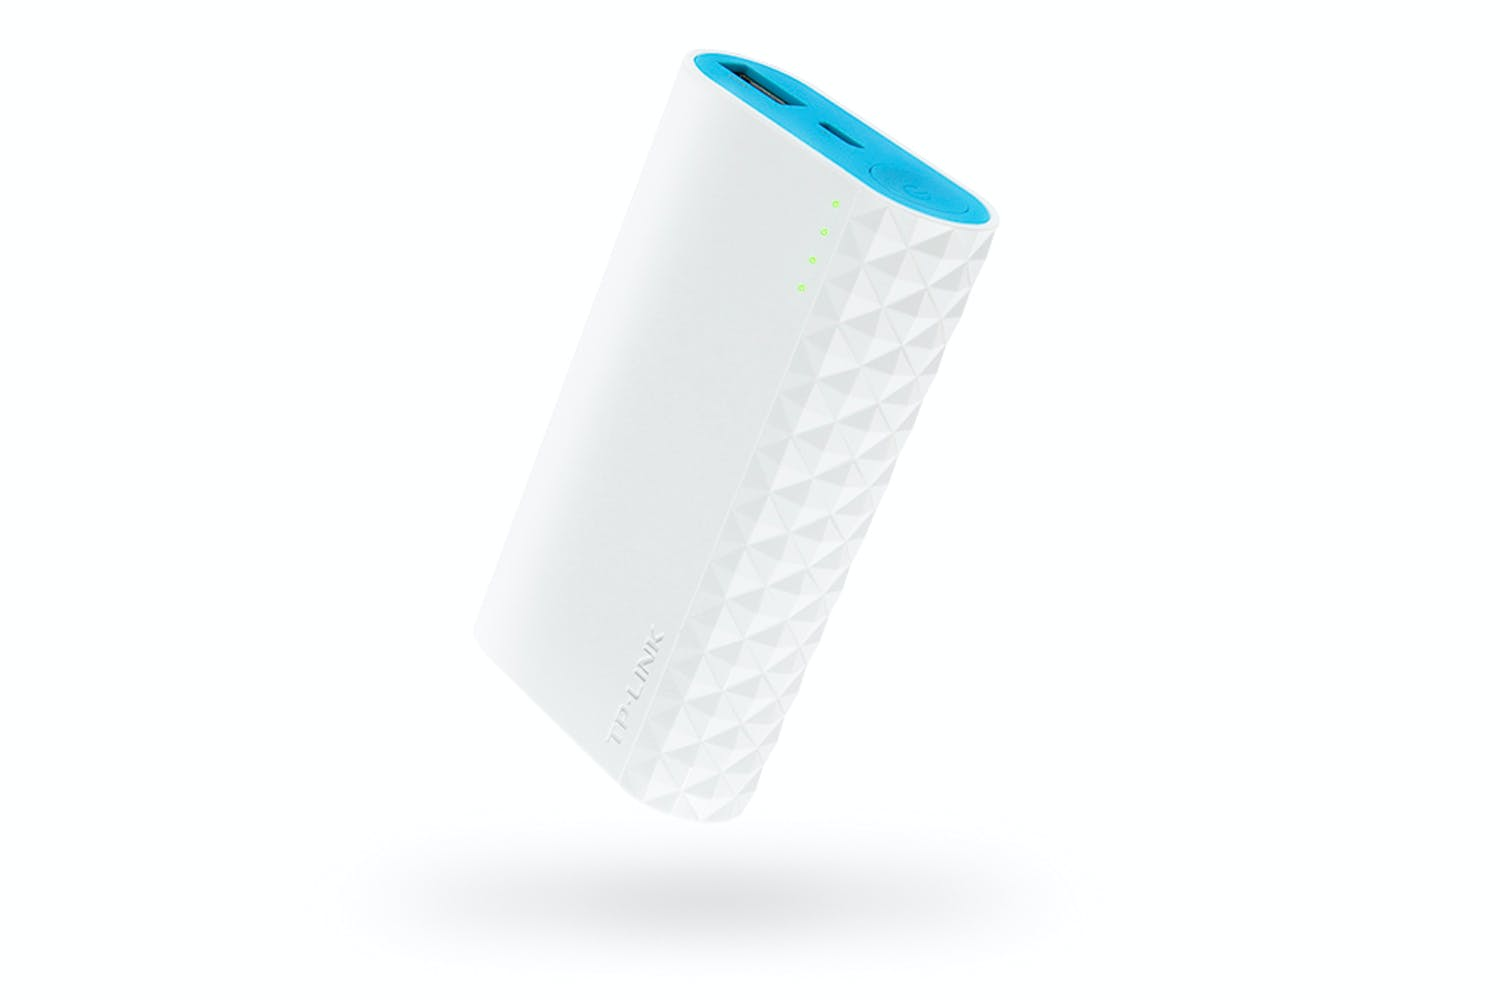 TP Link 5200mAh Power Bank